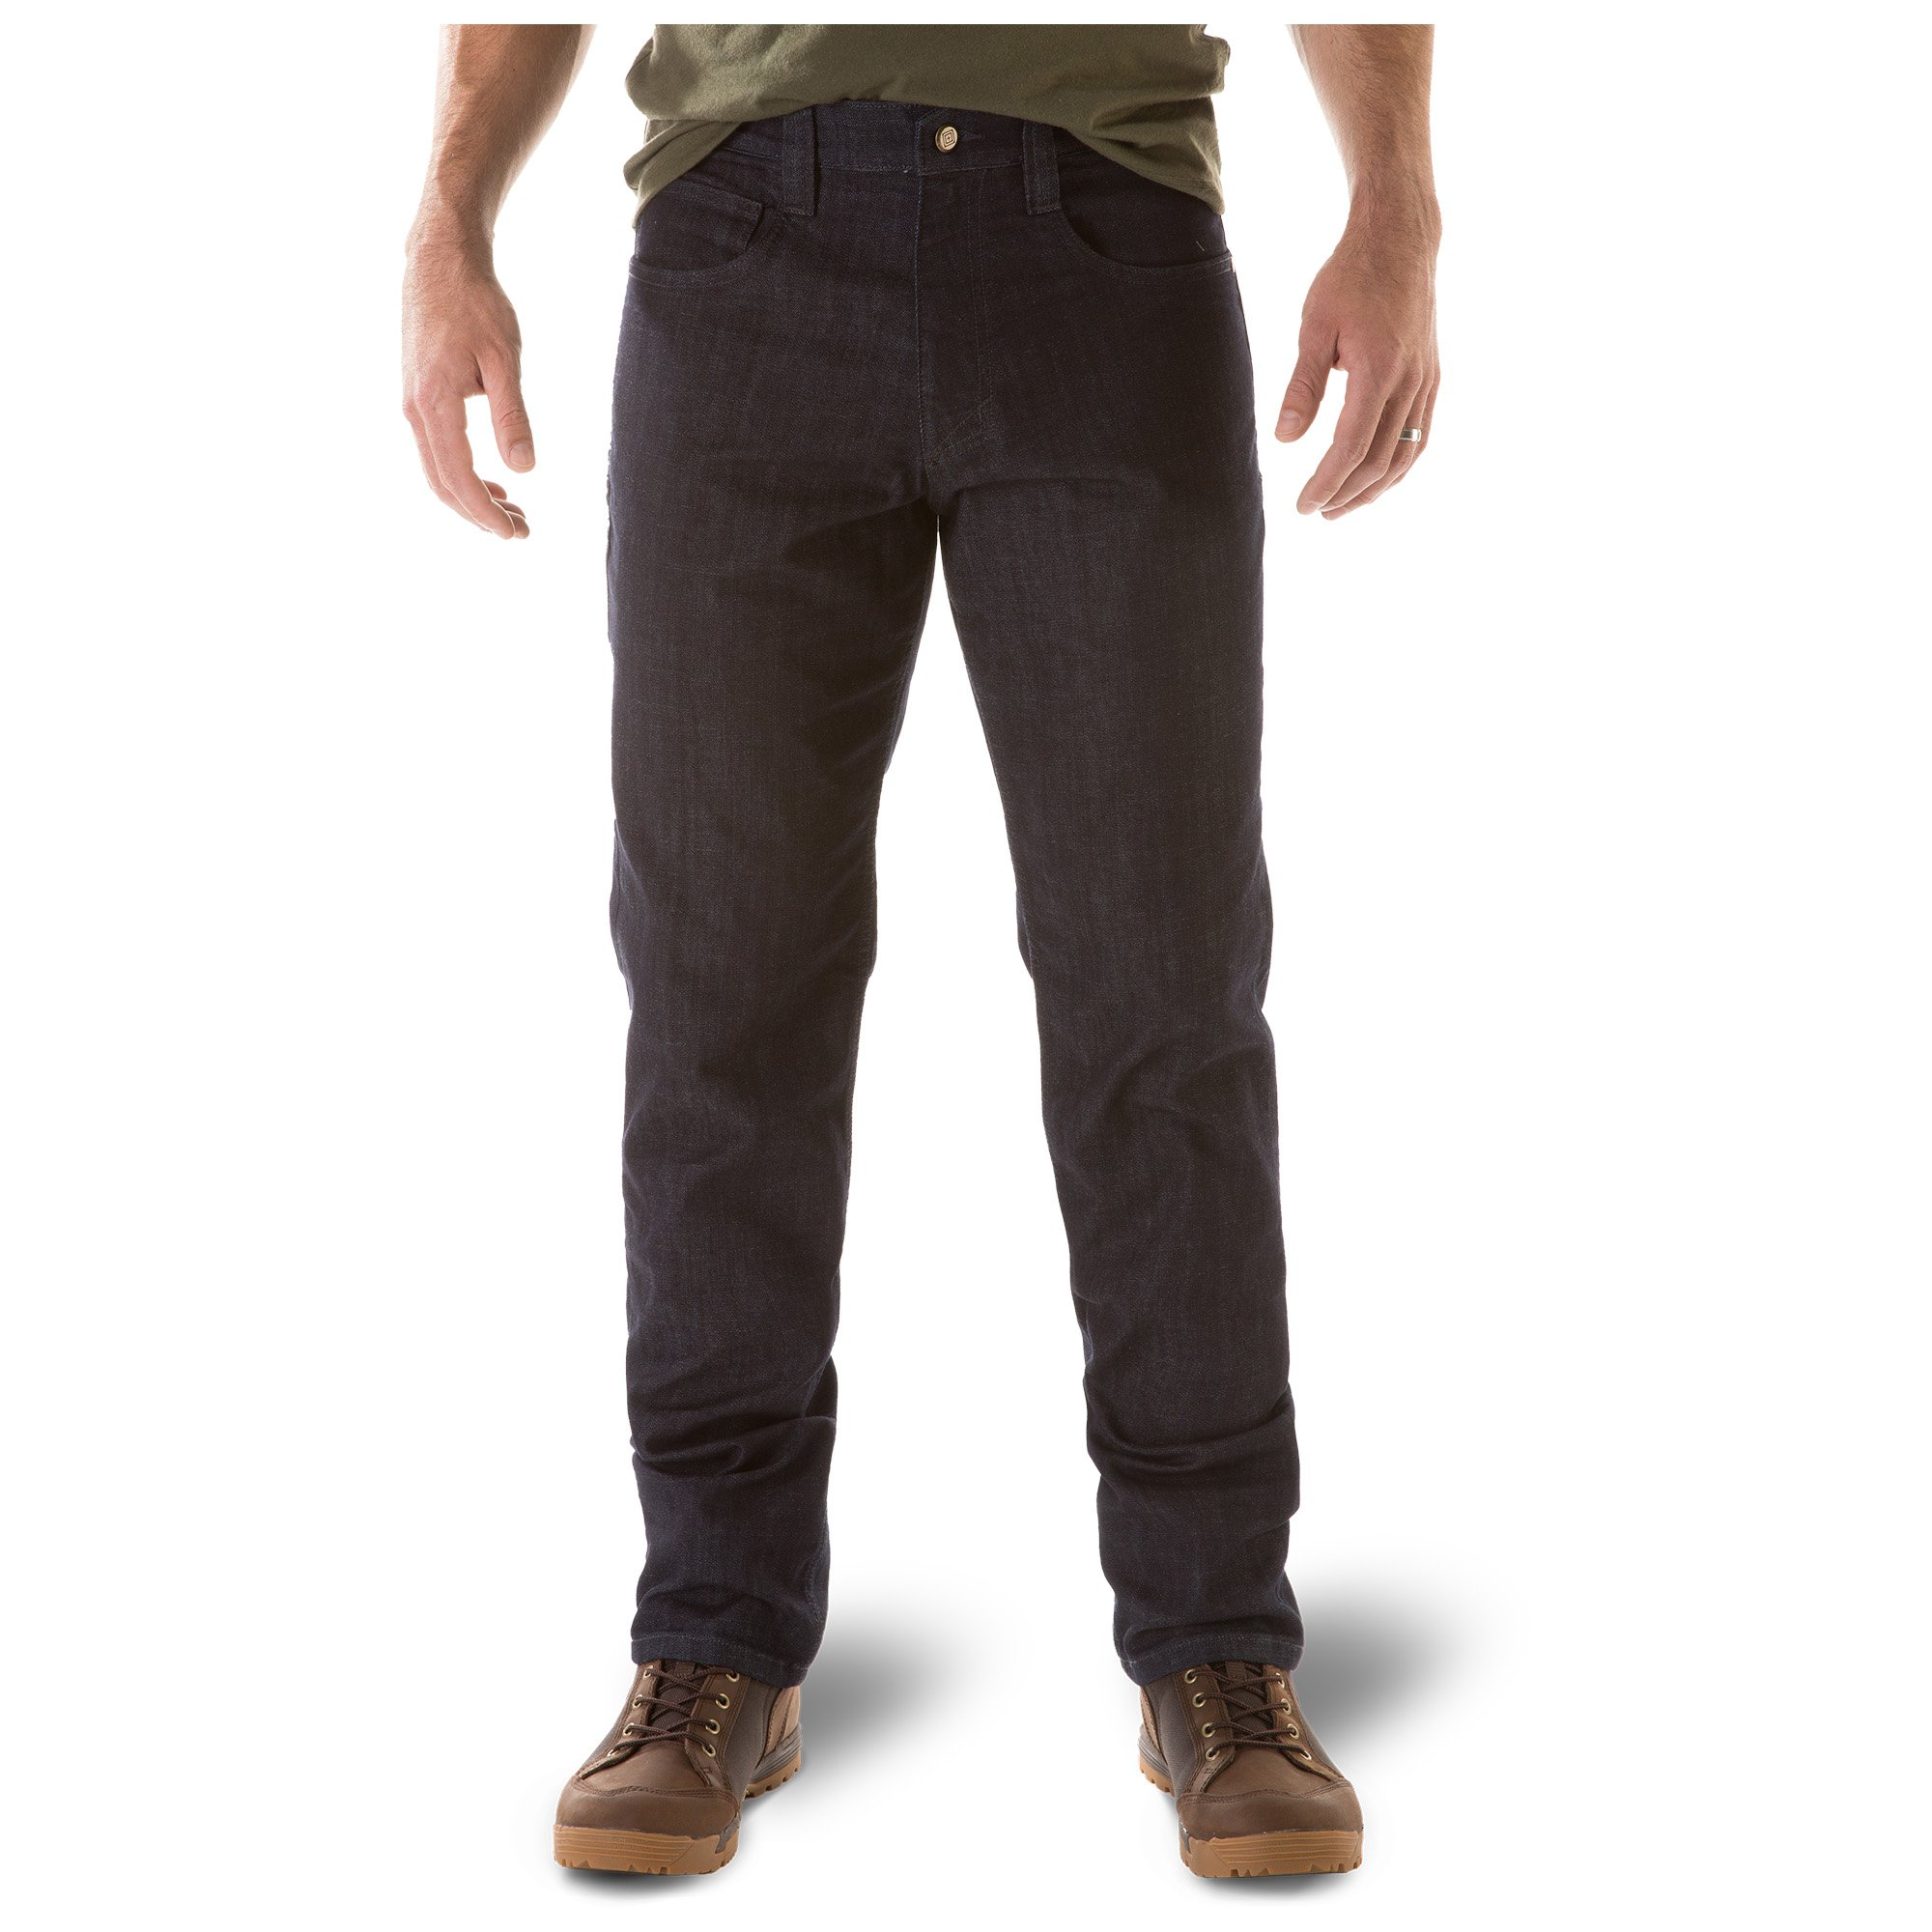 5.11 Mens Defender-Flex Jean Slim Fit Tactical Pant, Sytle 74465, Indigo, 30Wx30L by 5.11